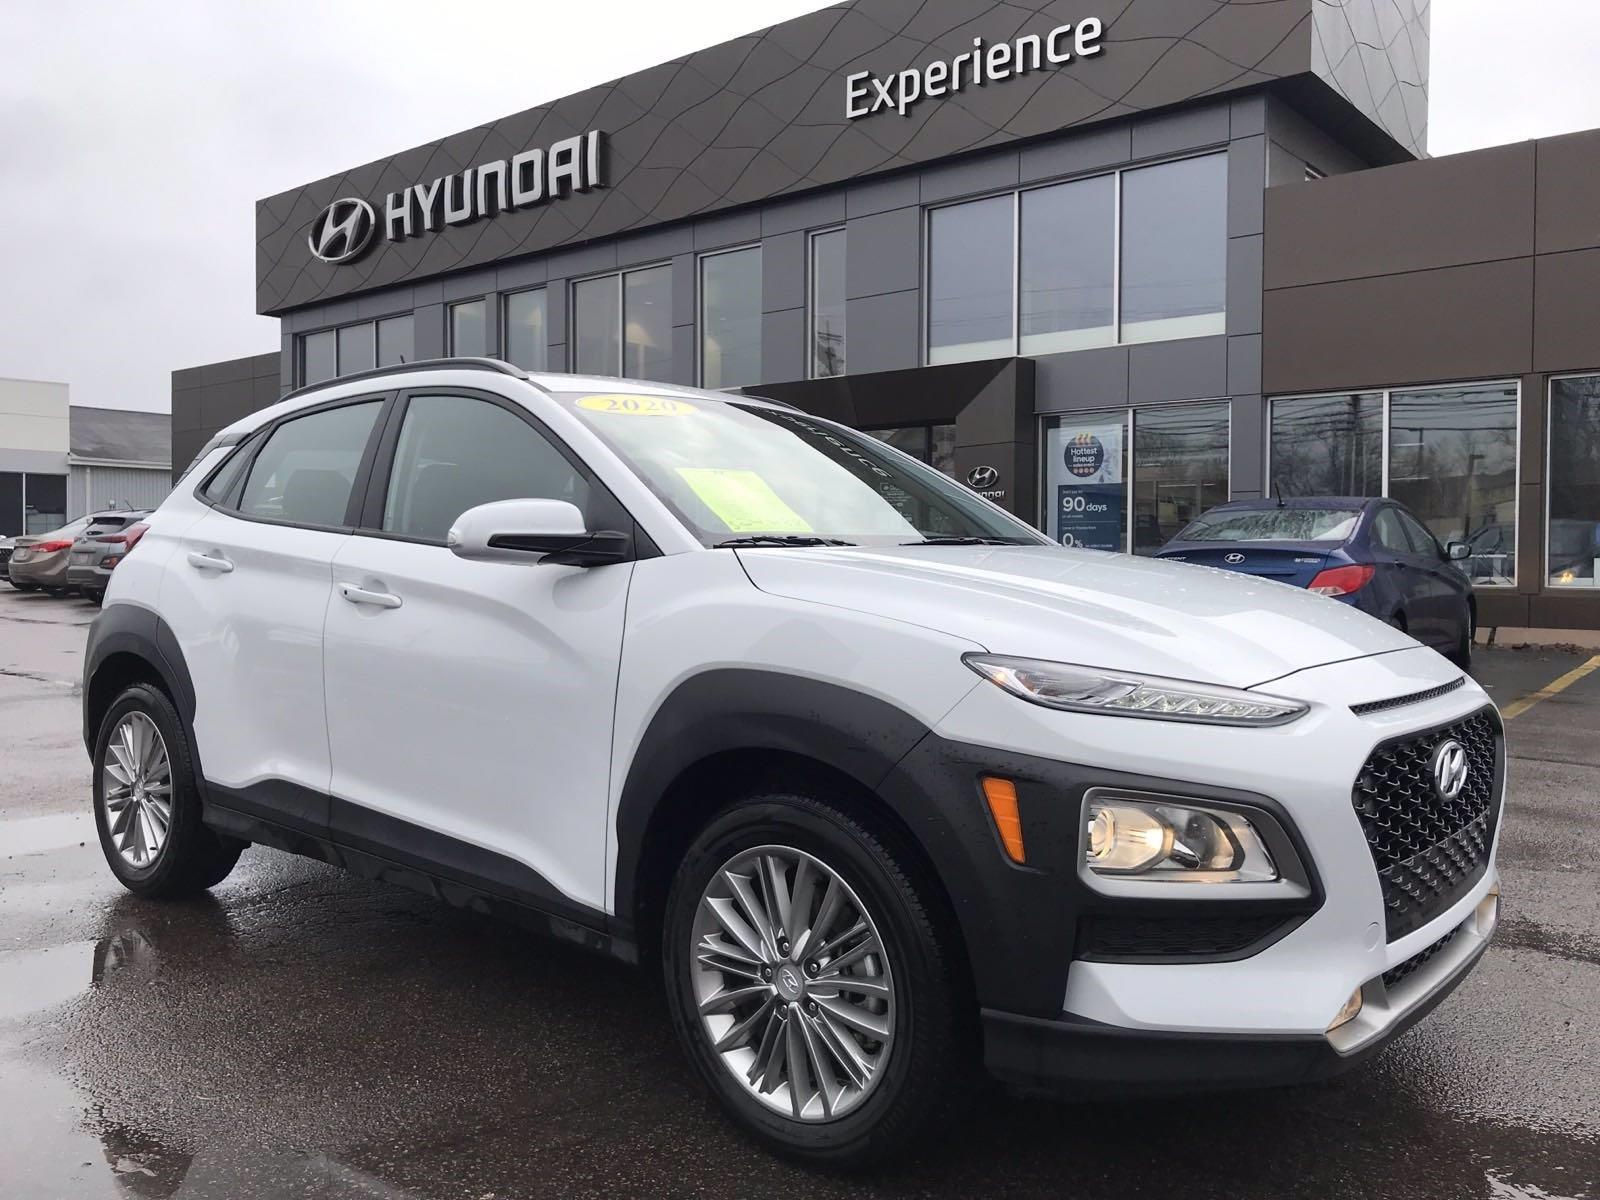 2020 Hyundai Kona 2.0L Preferred - 10,570km